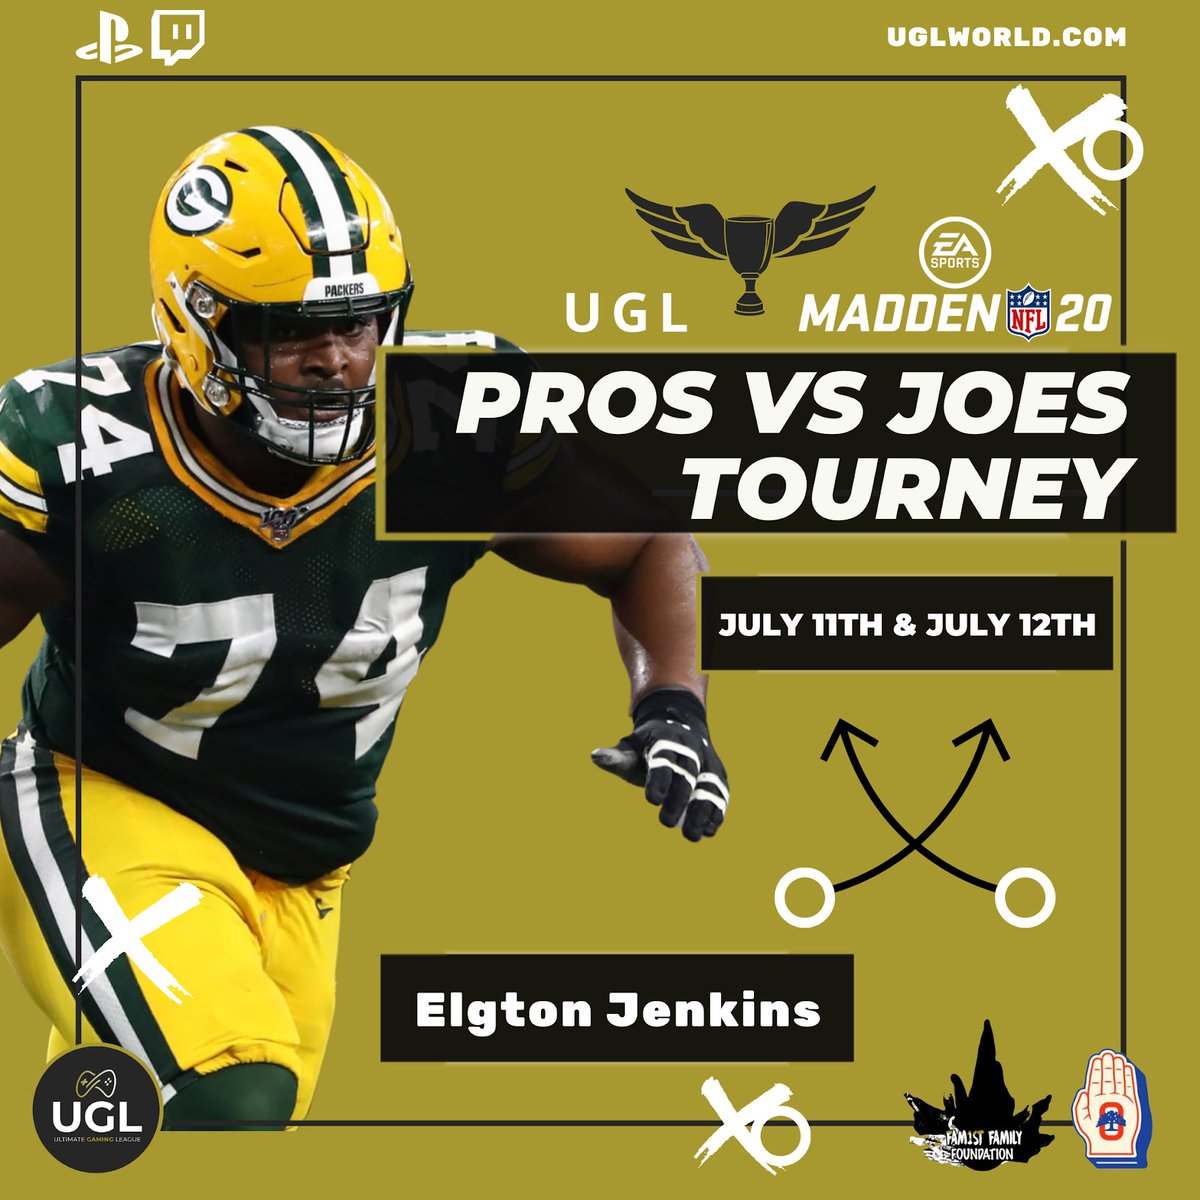 Elgton Jenkins, Guard for Green Bay Packers, on the pro roster — Pros Vs Joes Tourney July 11th & 12th   The #ProsVsJoes tournament donations will provide support to Covid-19 Relief Funds via: @theoaklandpledge @fam1stfam  #UGL #ProsVsJoes #Covid19Relief #FamilyFirst pic.twitter.com/odRIDTNXEL